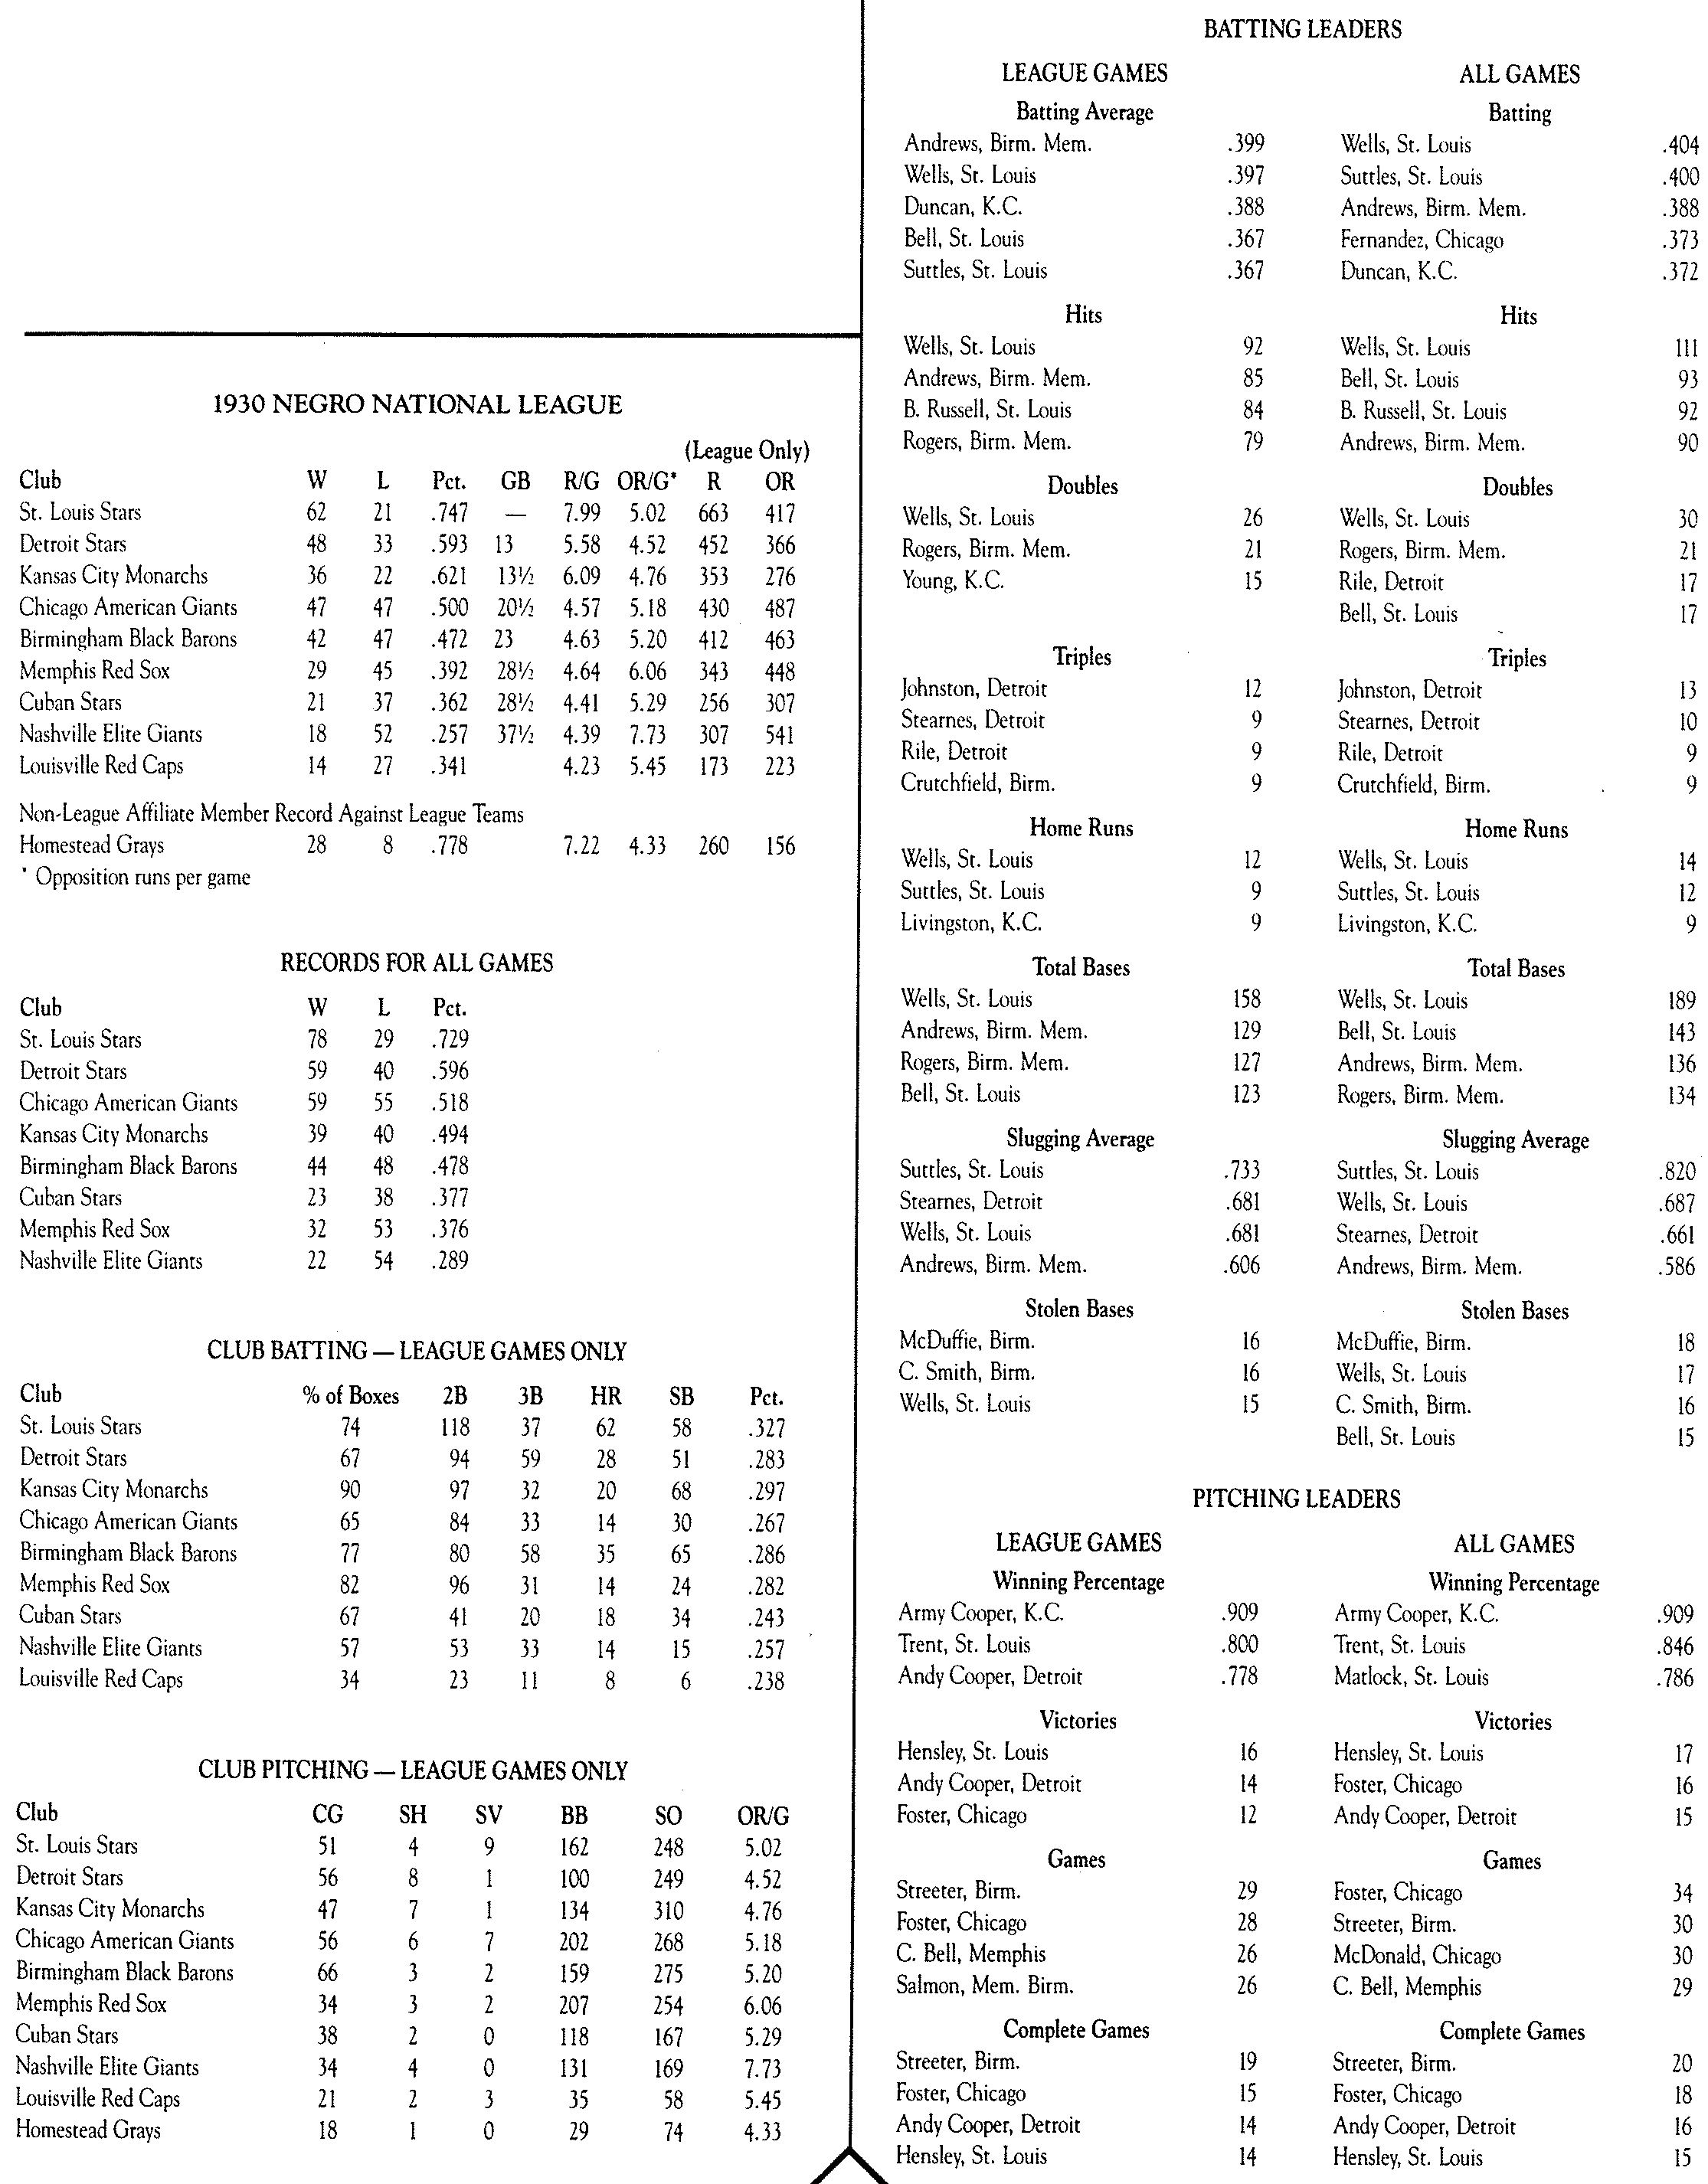 1930 Negro National League stats: Table 1 (DICK CLARK AND JOHN HOLWAY)